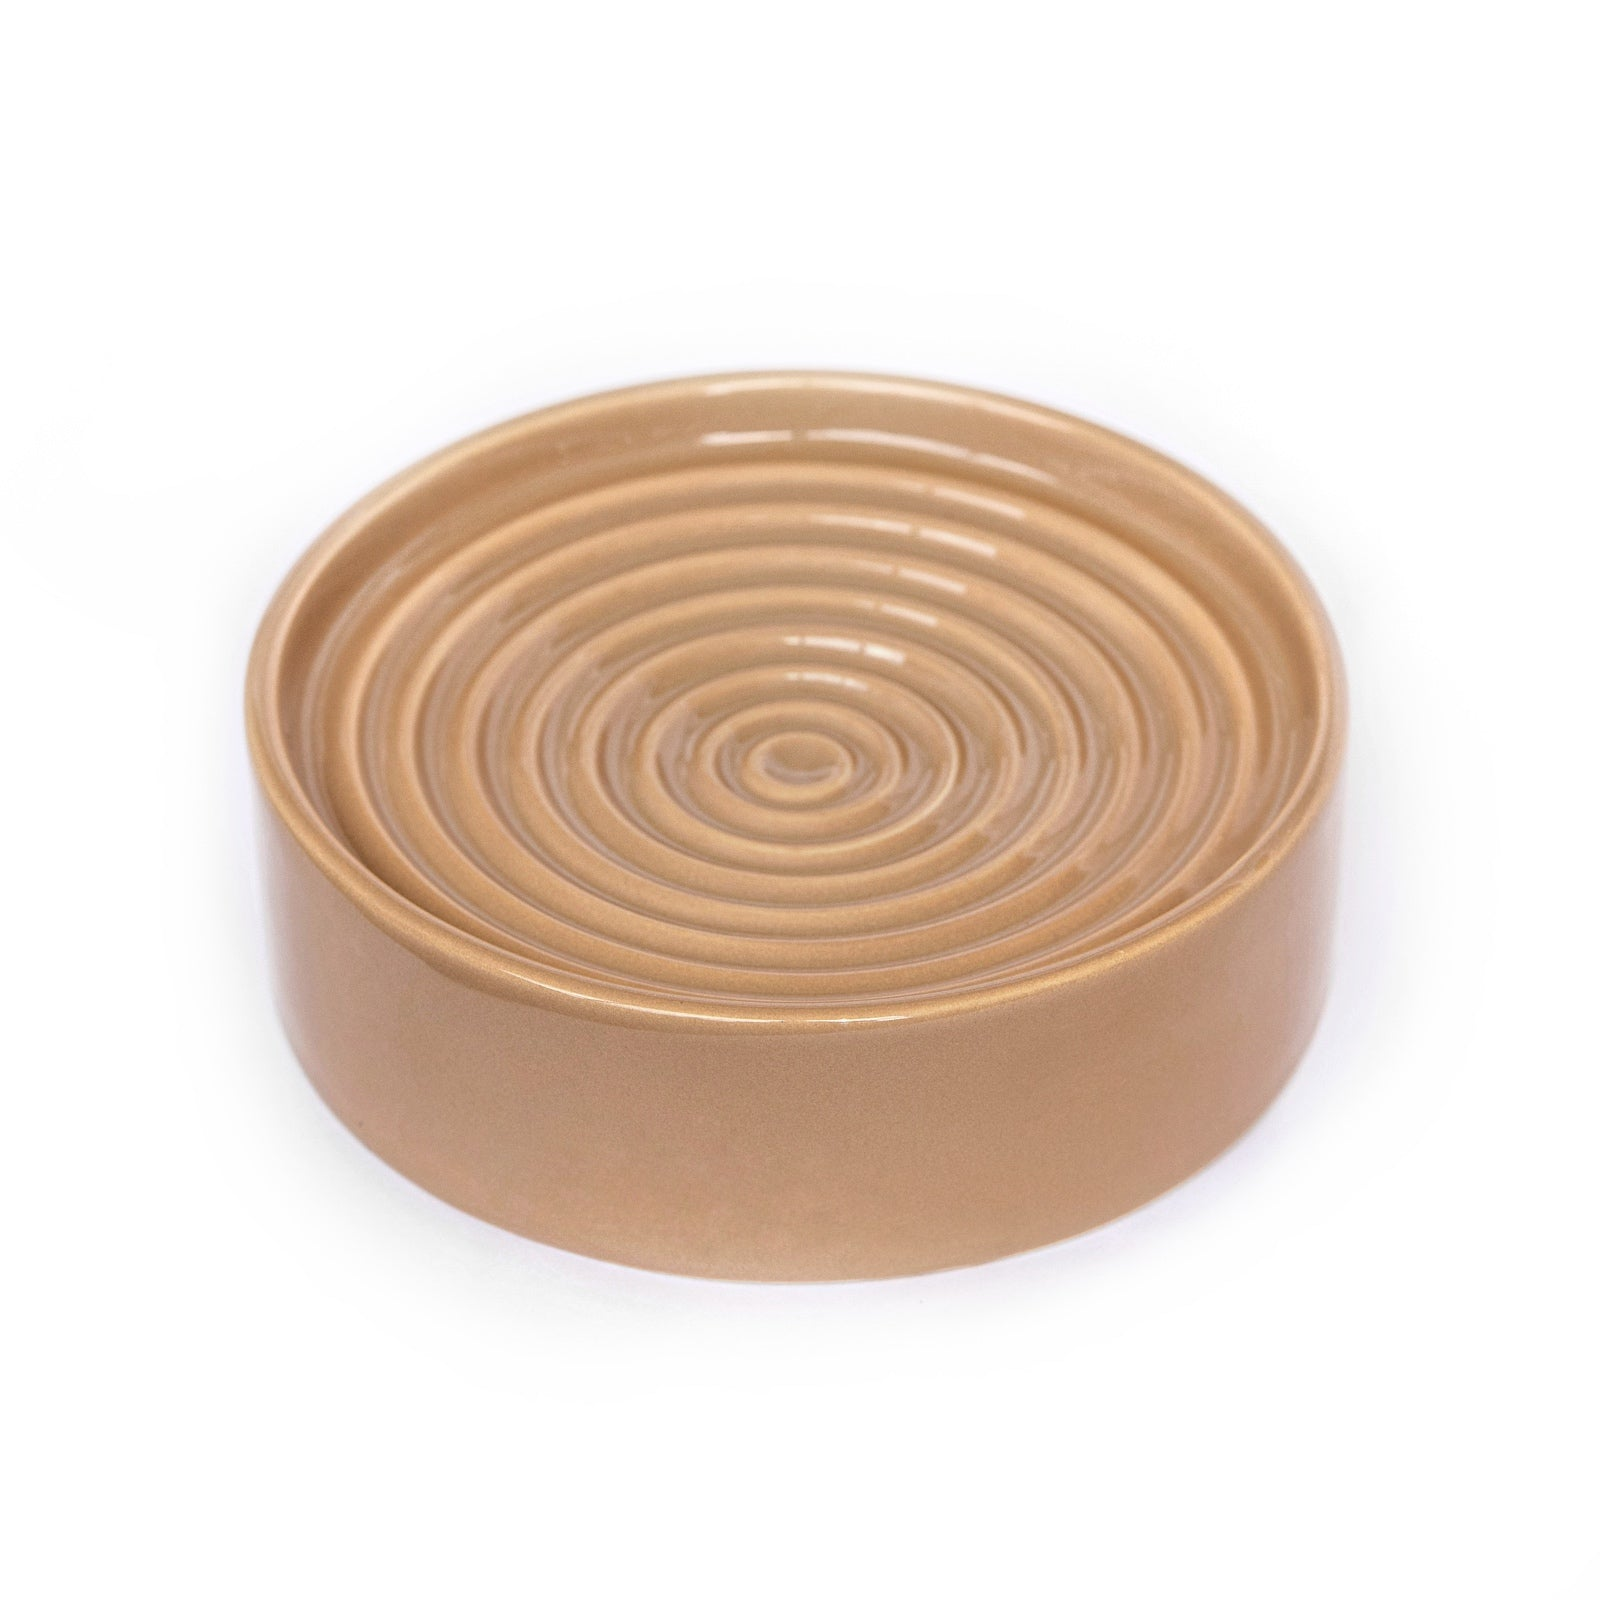 Noots Ceramic Whisker-friendly Slow Feed Cat Bowl in Hazelnut